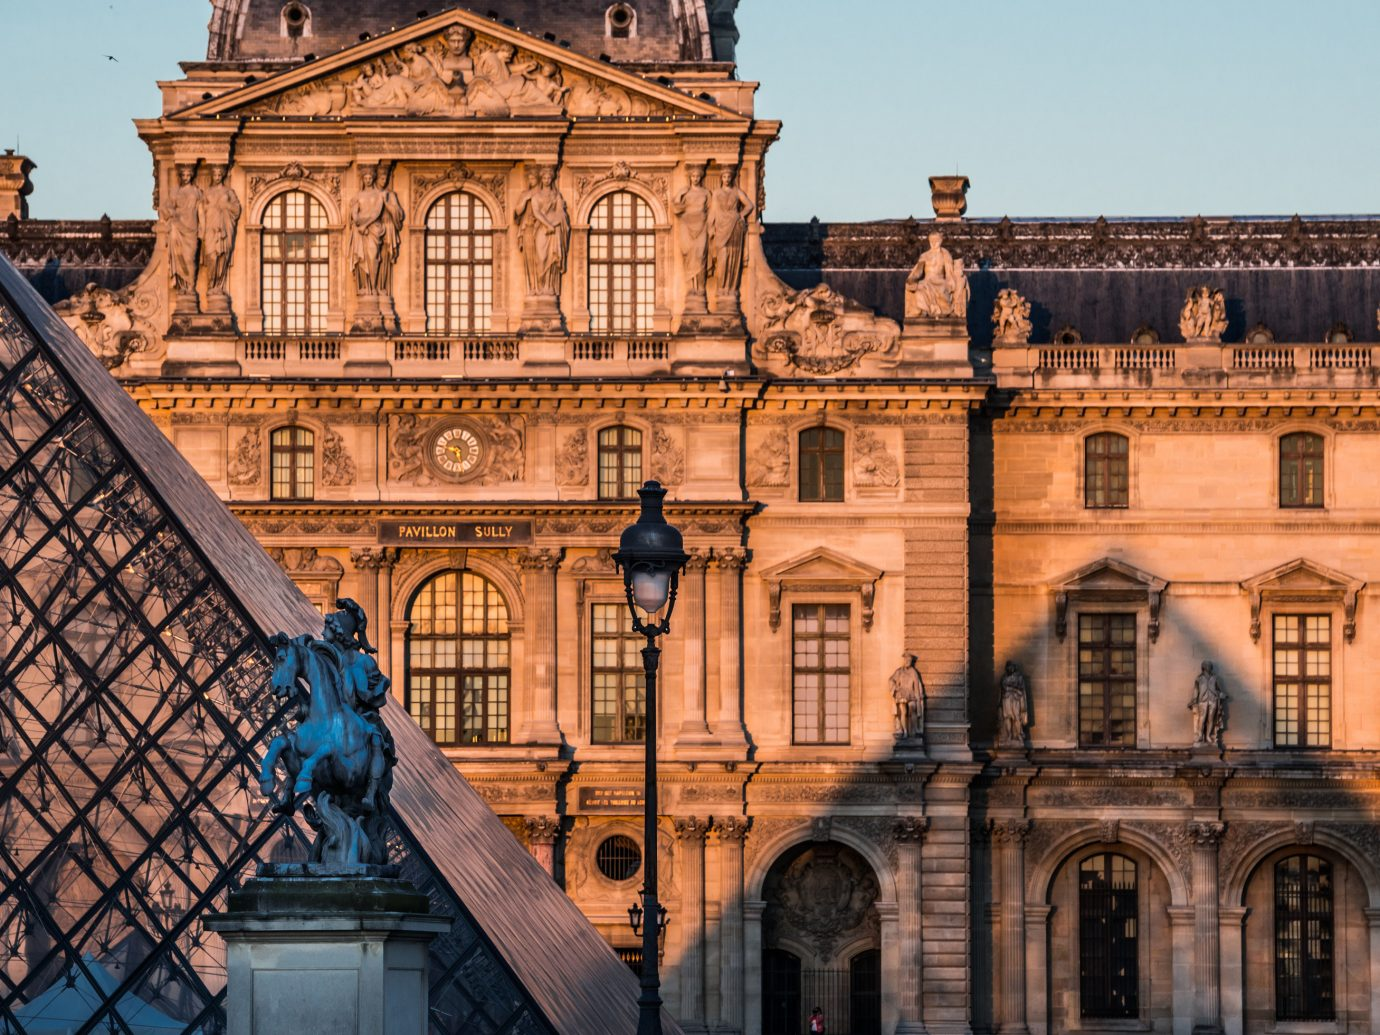 Exterior of Musee du Louvre in Paris